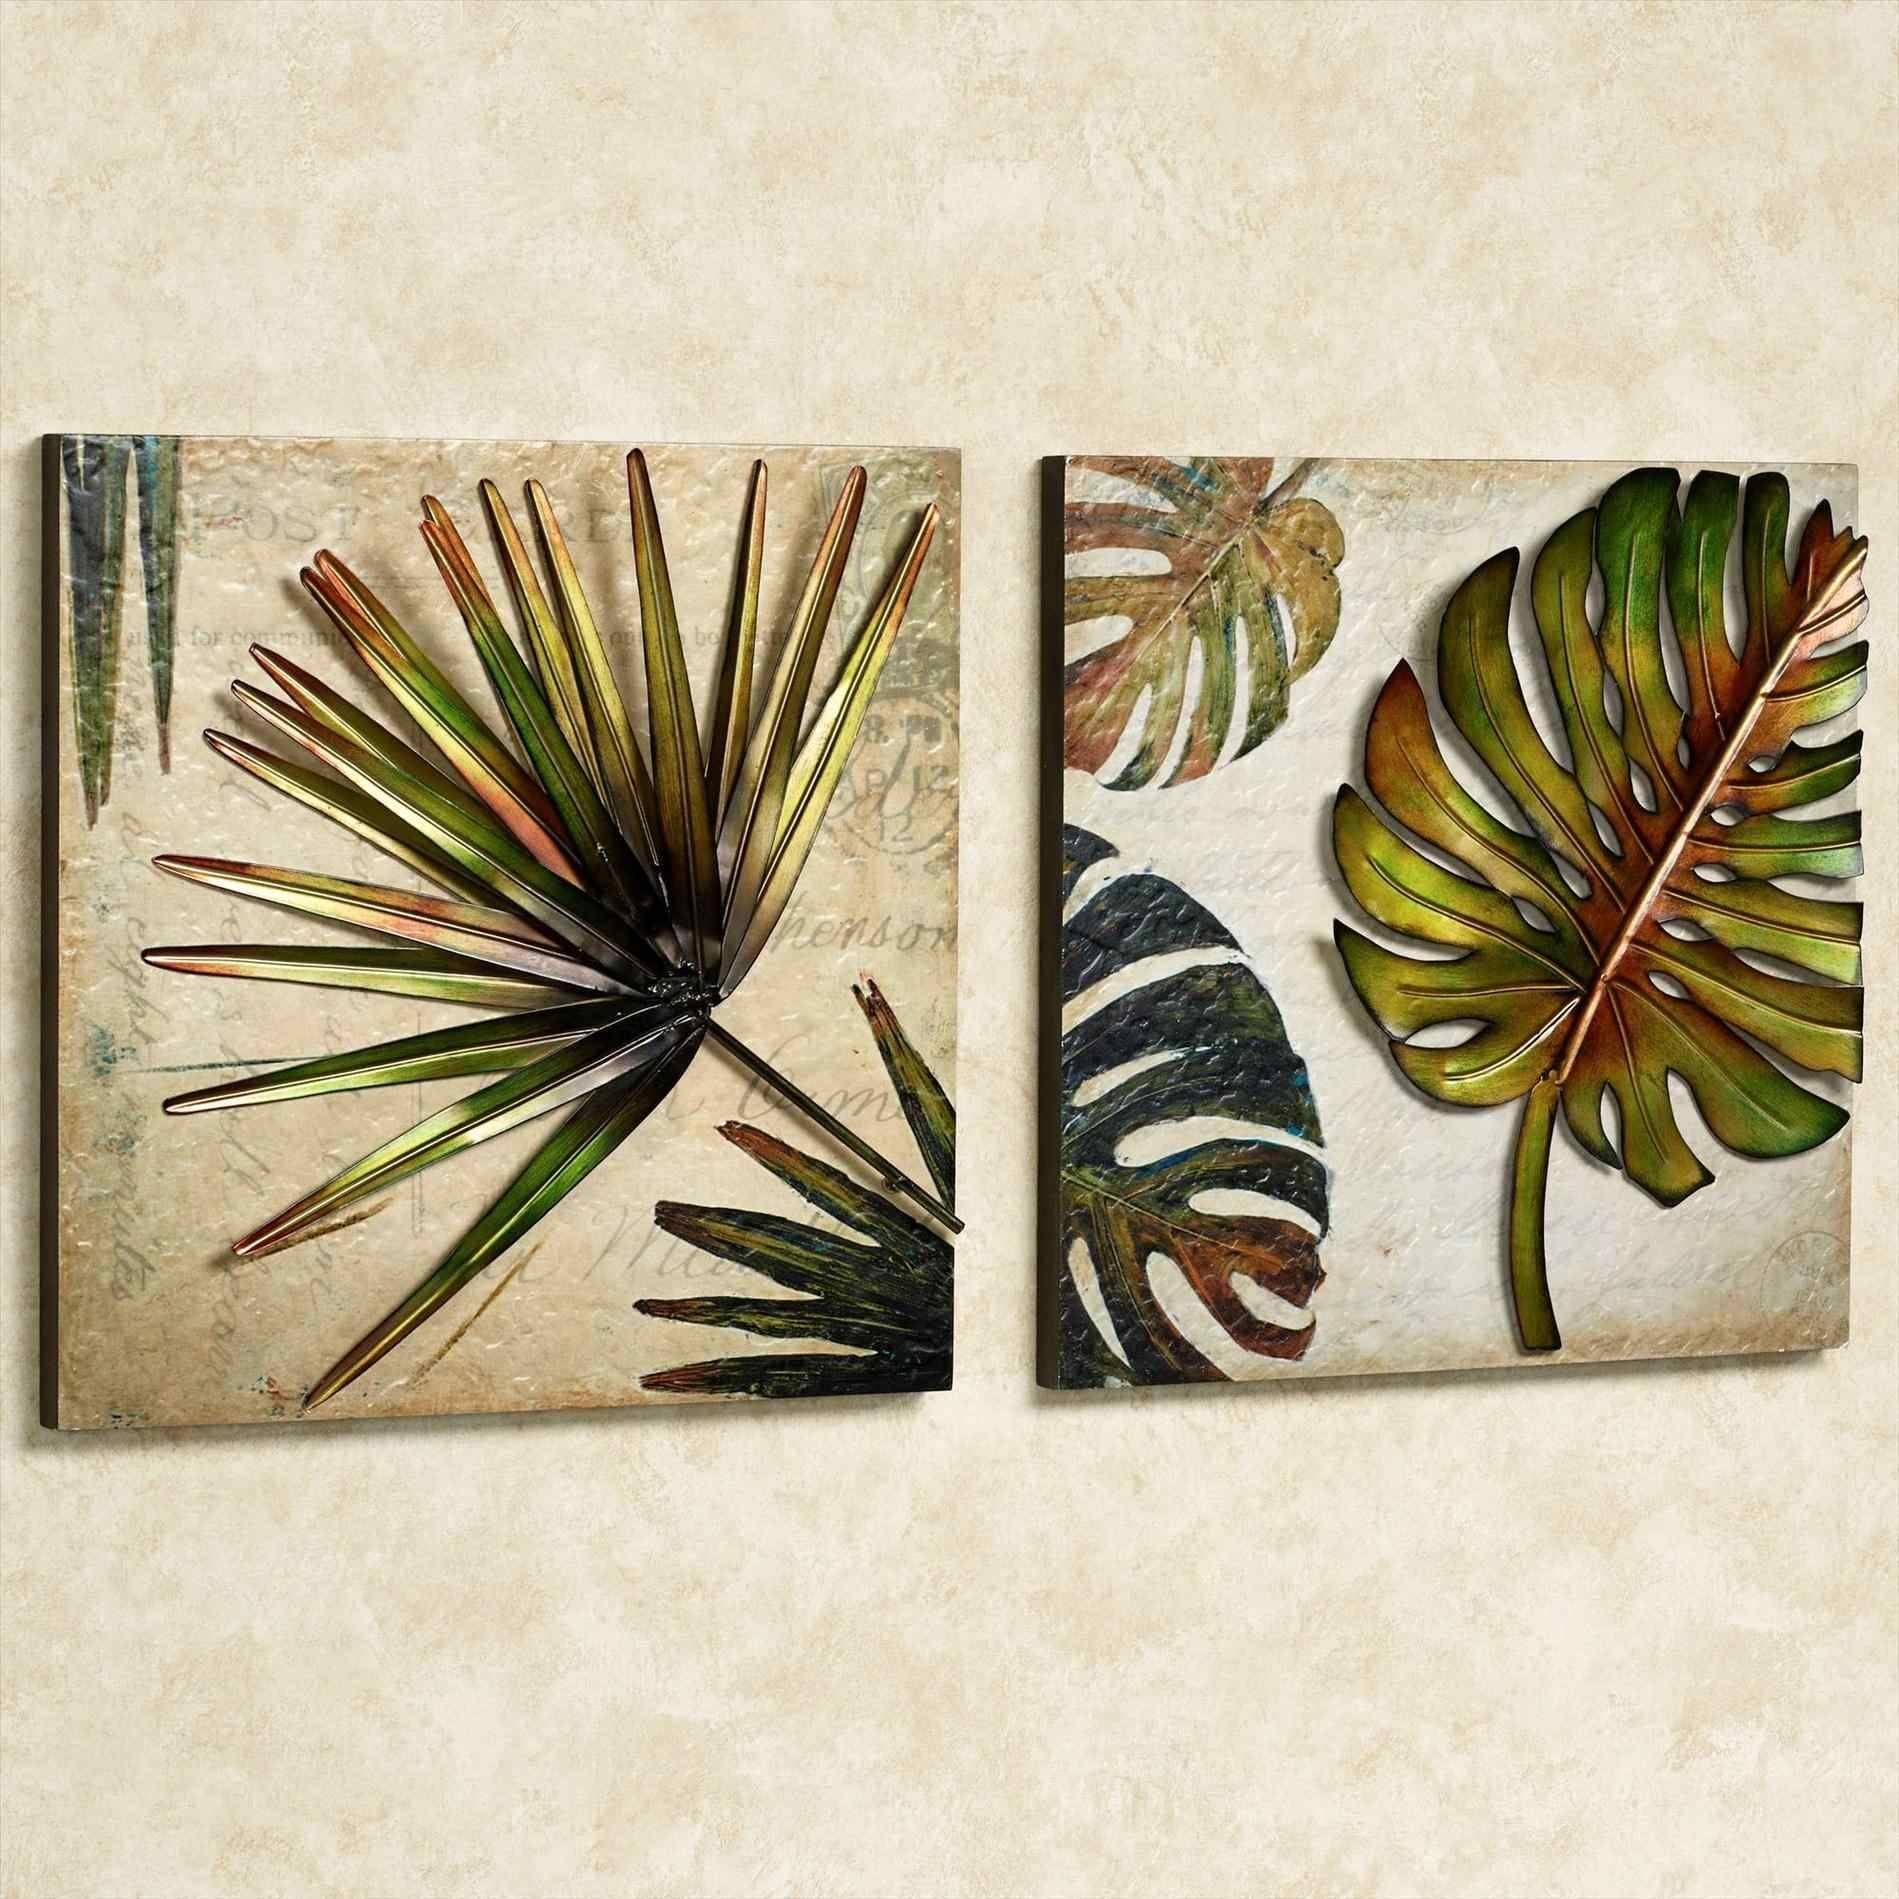 Artisan Metal Wall Art | Home Interior Decor With Latest Artisan Metal Wall Art (View 6 of 25)